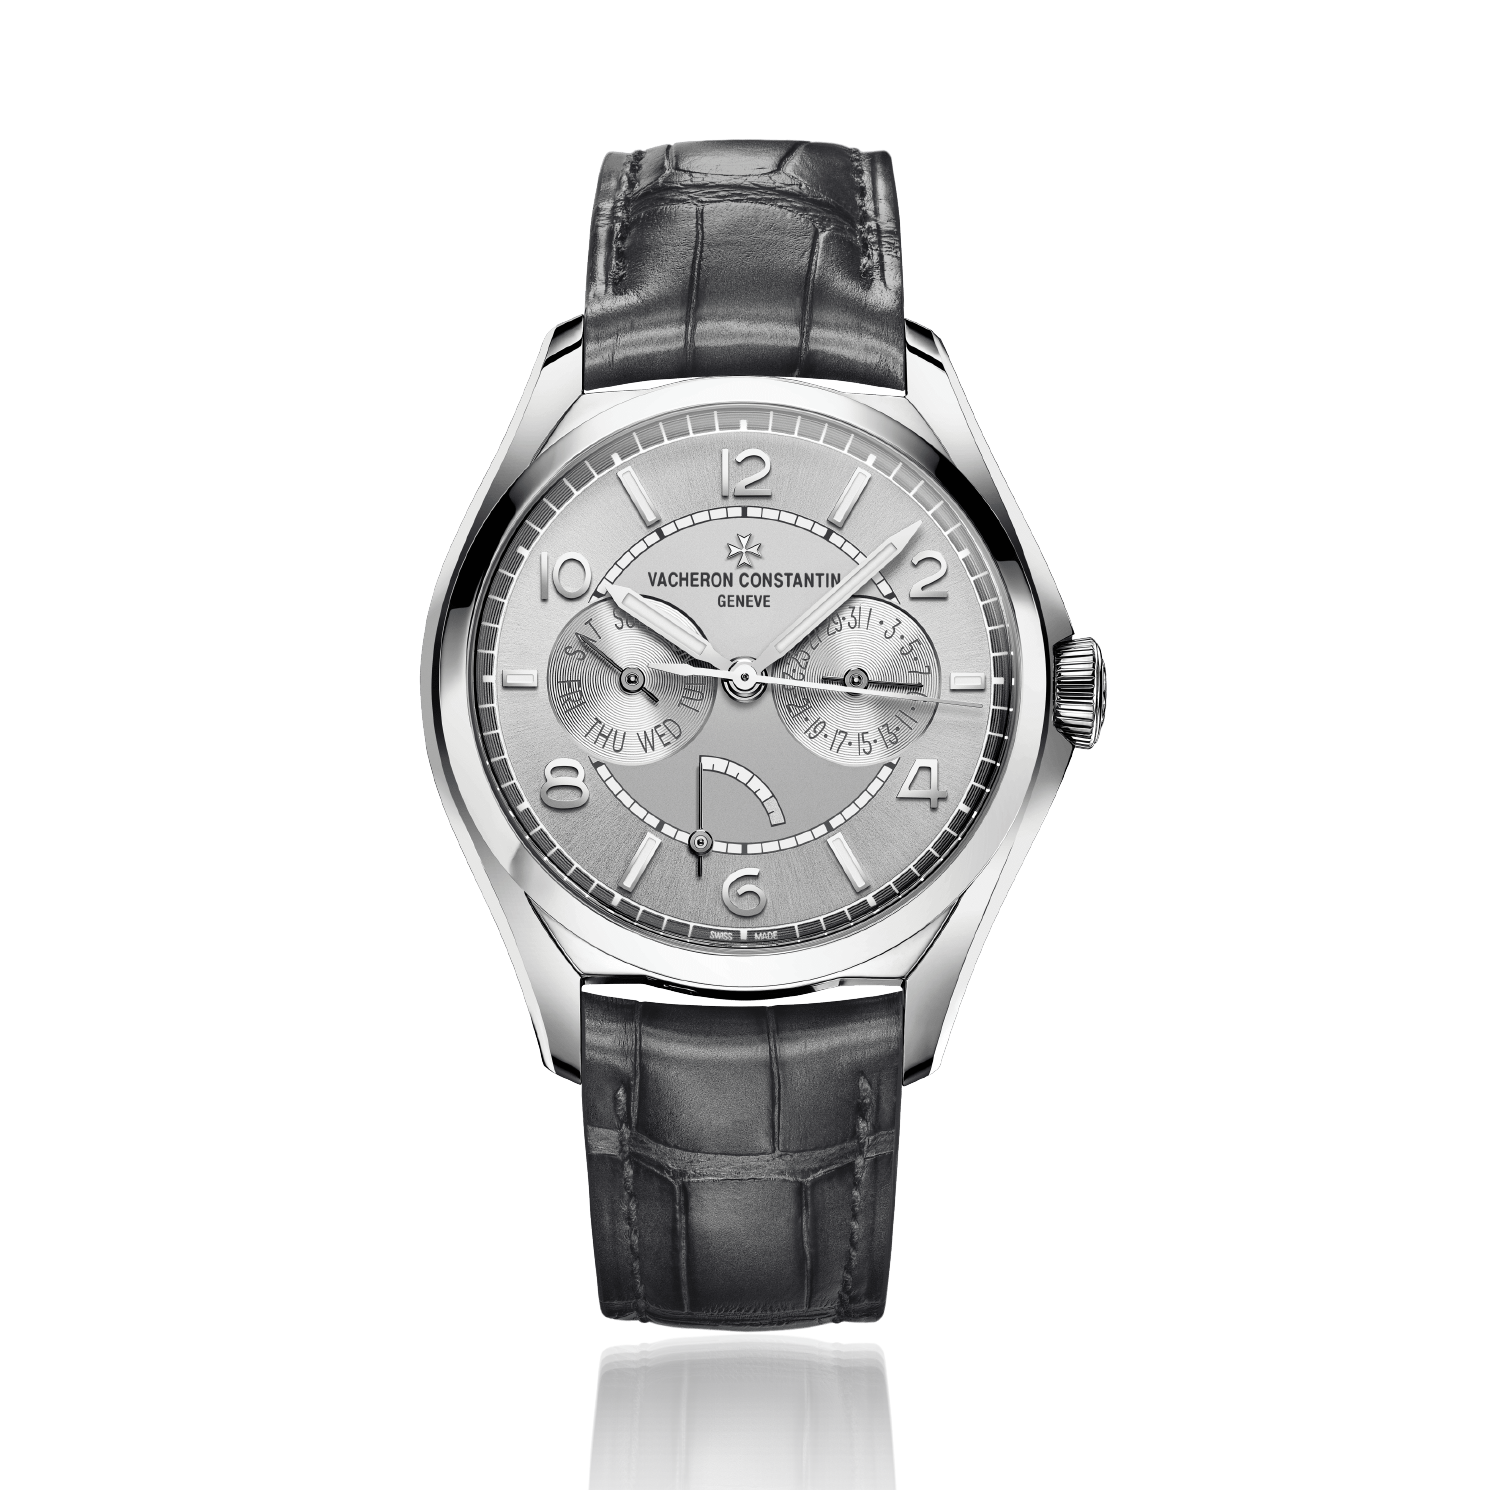 Vacheron Constantin Fiftysix Day-date